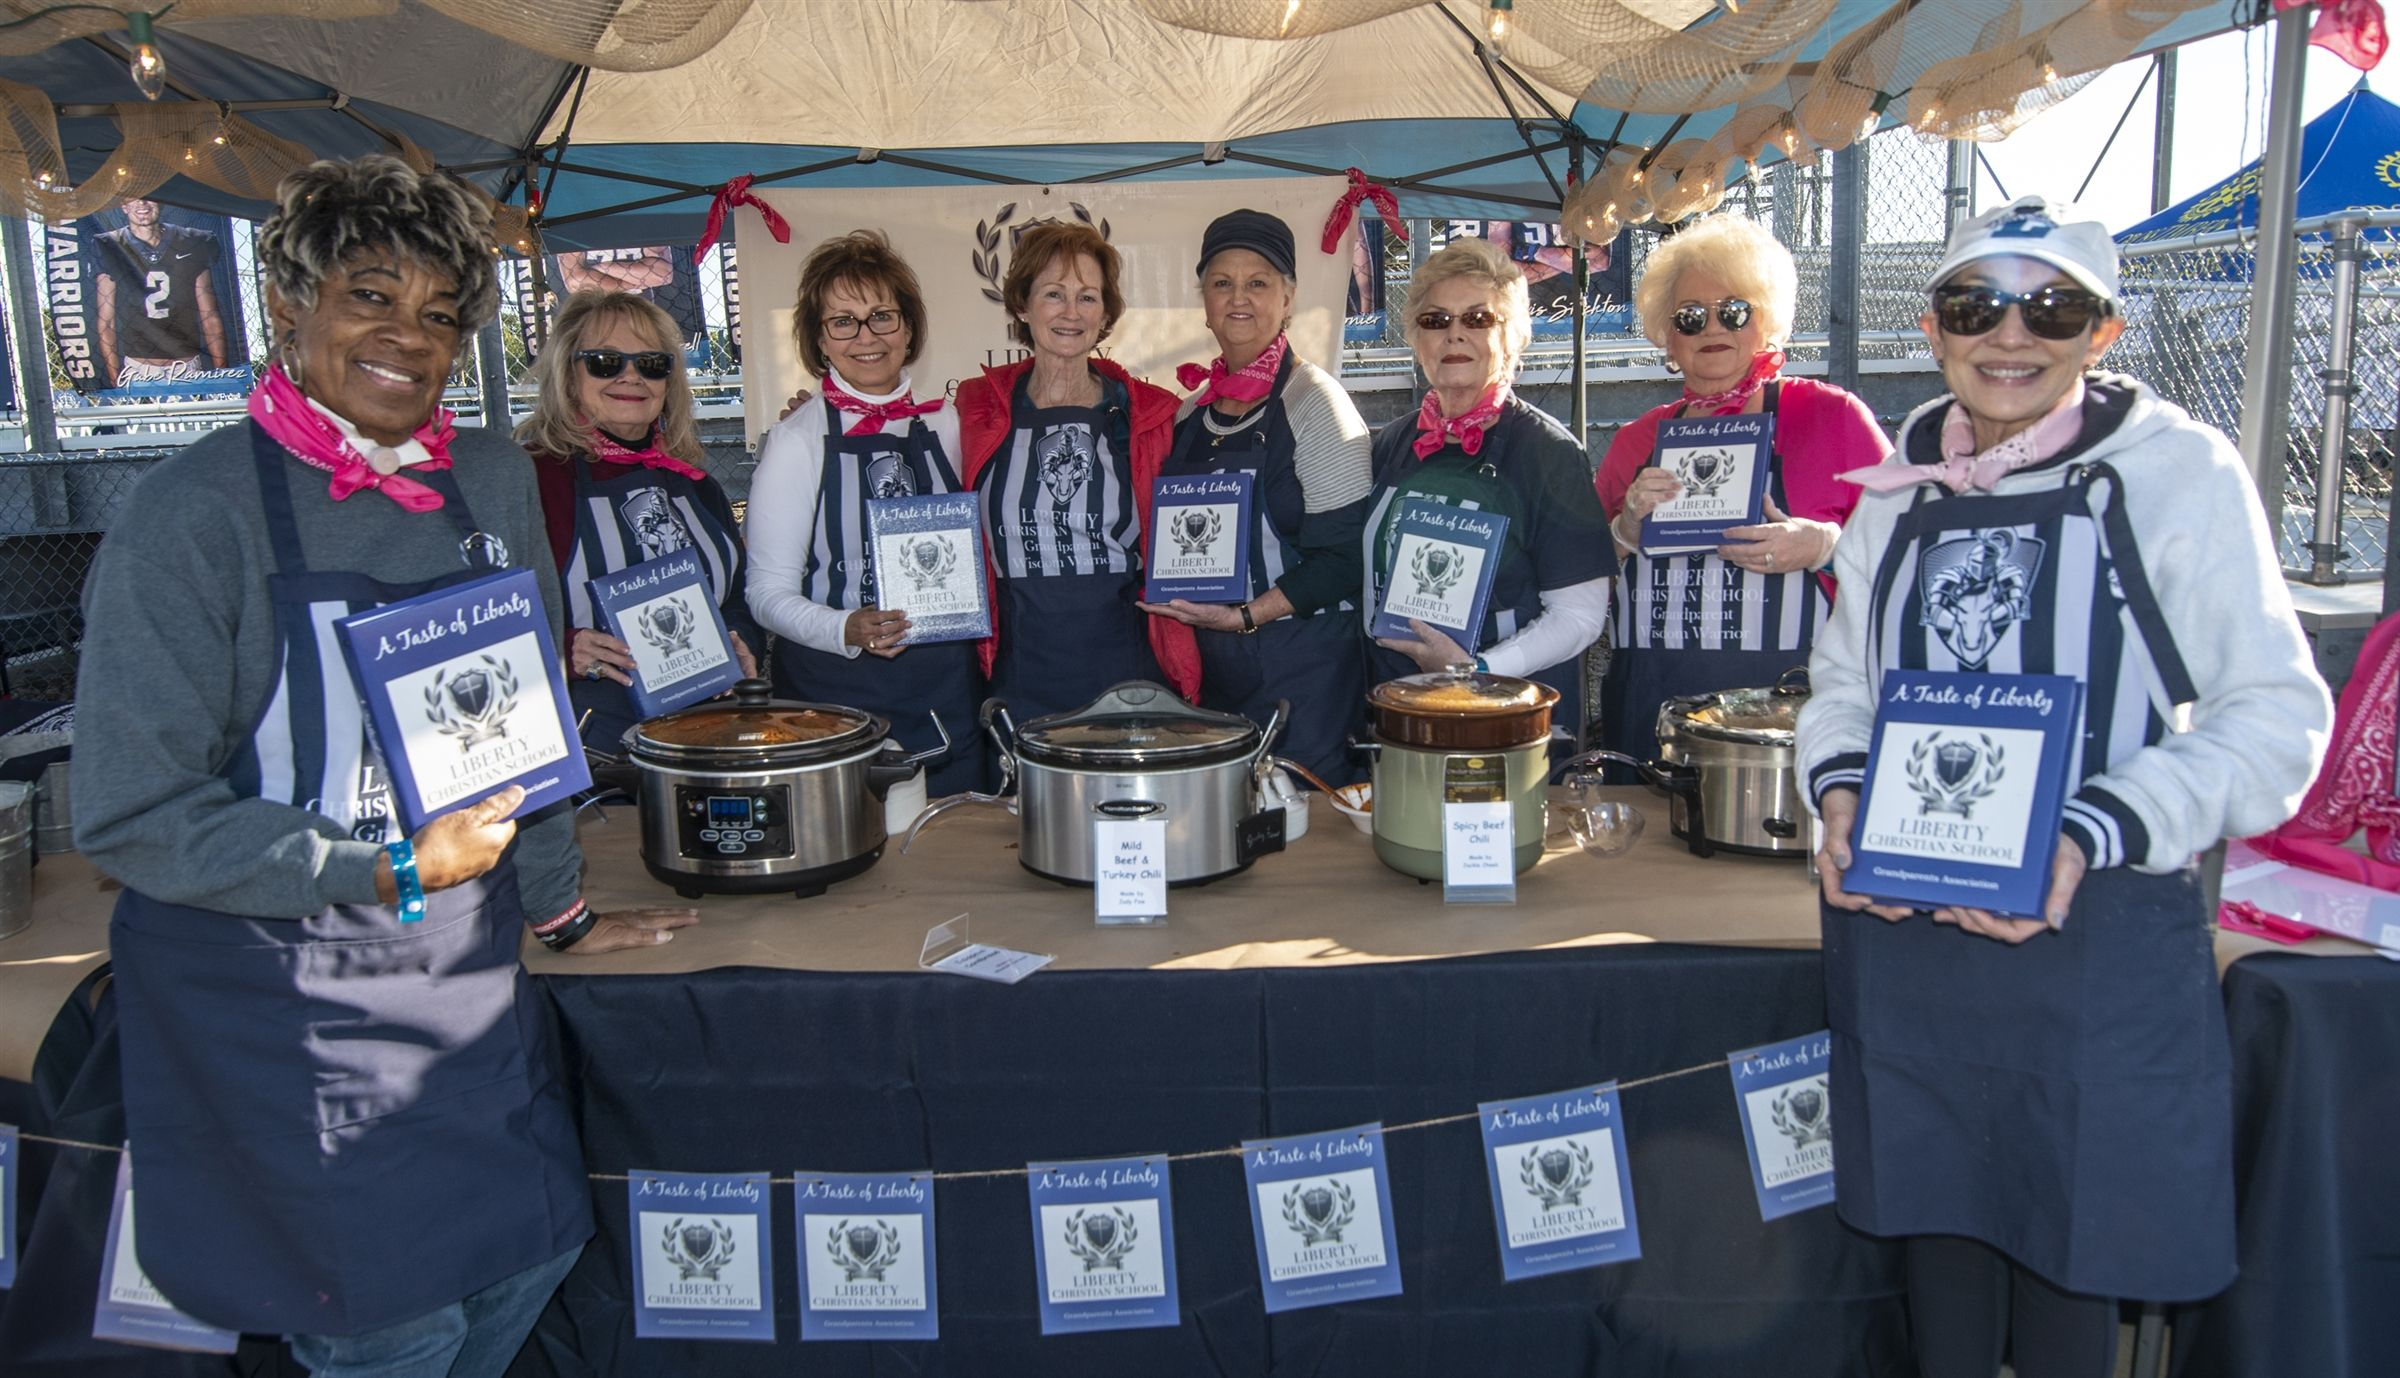 Grandparents display their cookbook at their Chili Cook-off booth